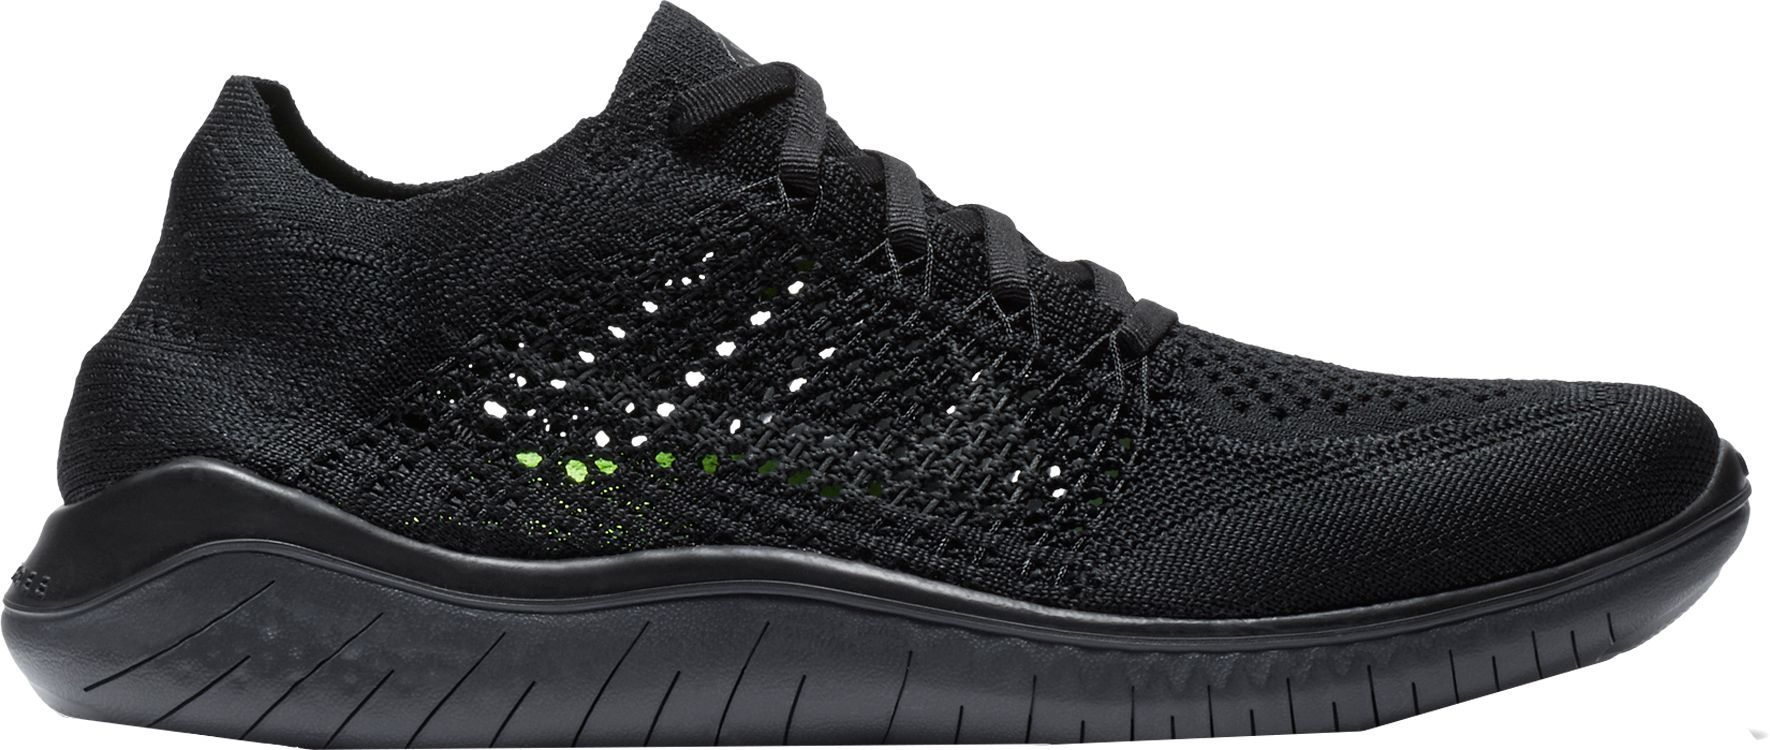 buy online 5e035 450e8 Nike Women's Free RN Flyknit 2018 Running Shoes | Products ...